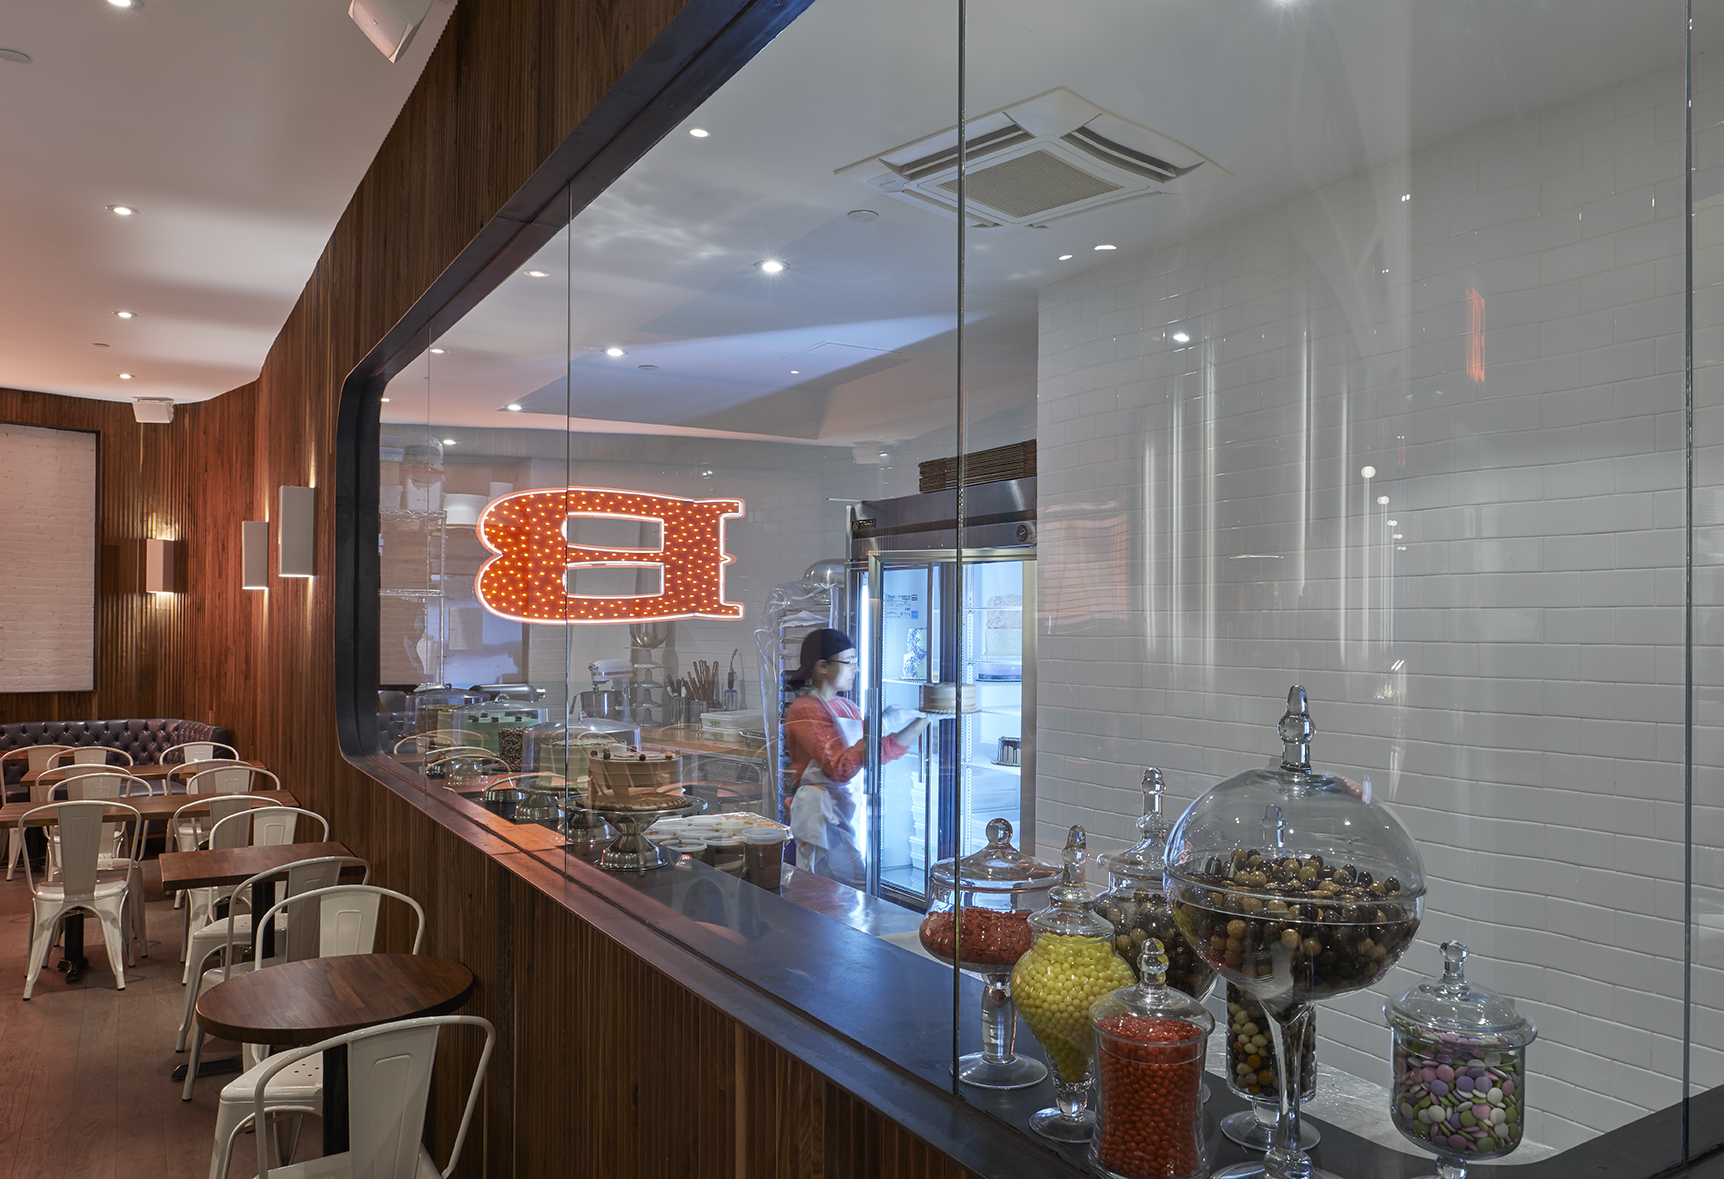 Viewing window to the kitchen of Baked Tribeca where a worker places a cake inside a bright refrigerator; the large B reflected on the glass. MEP designed by 2L Engineering.